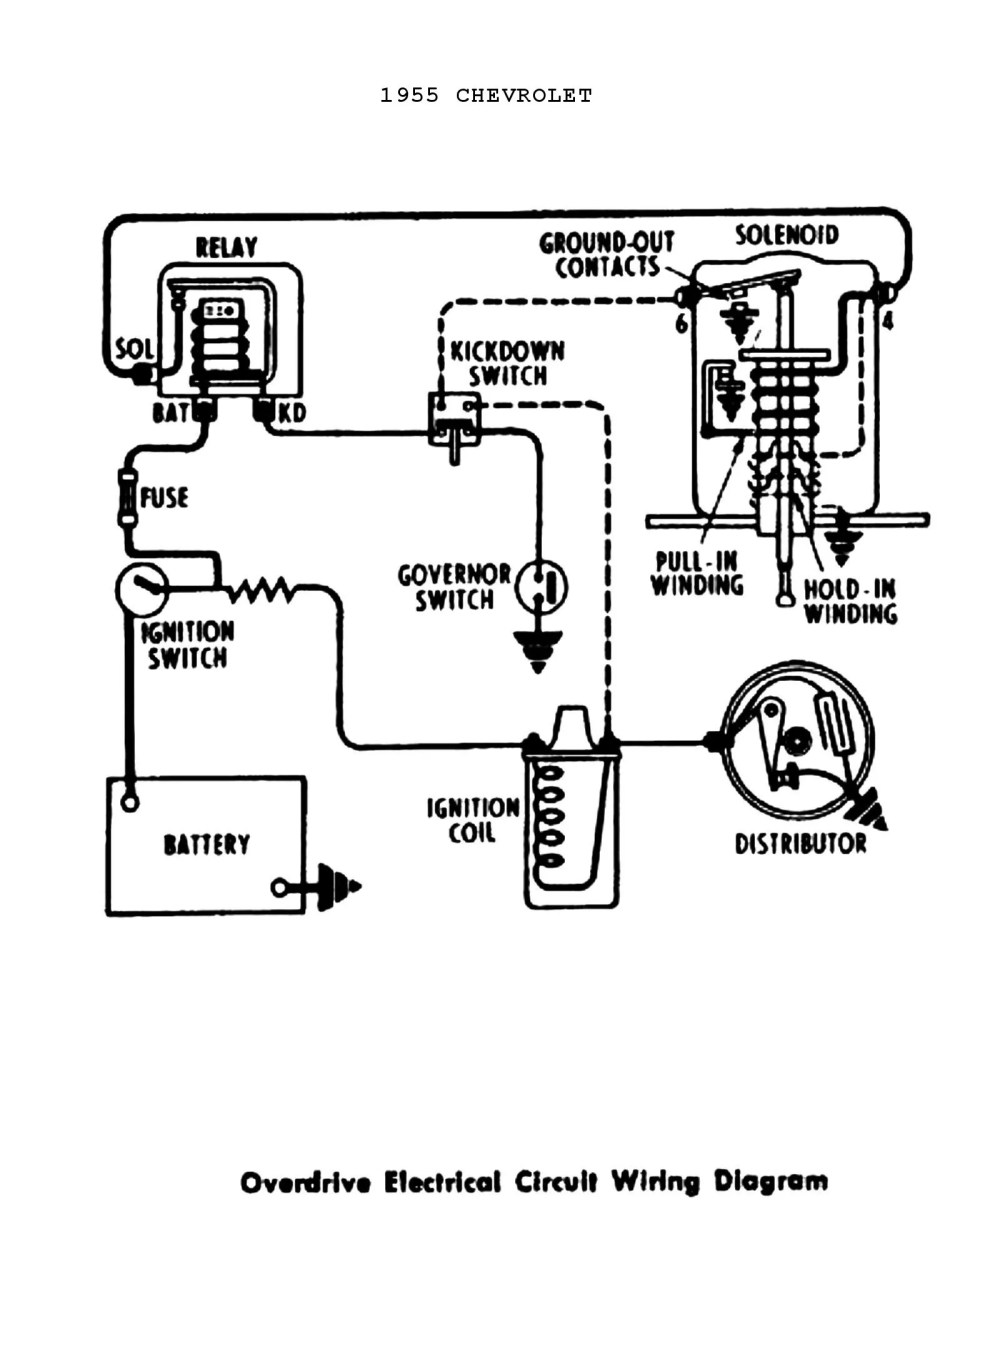 medium resolution of basic gm ignition wiring wiring diagram schematics 2008 chevy ignition coil diagram 1962 cadillac ignition coil diagram